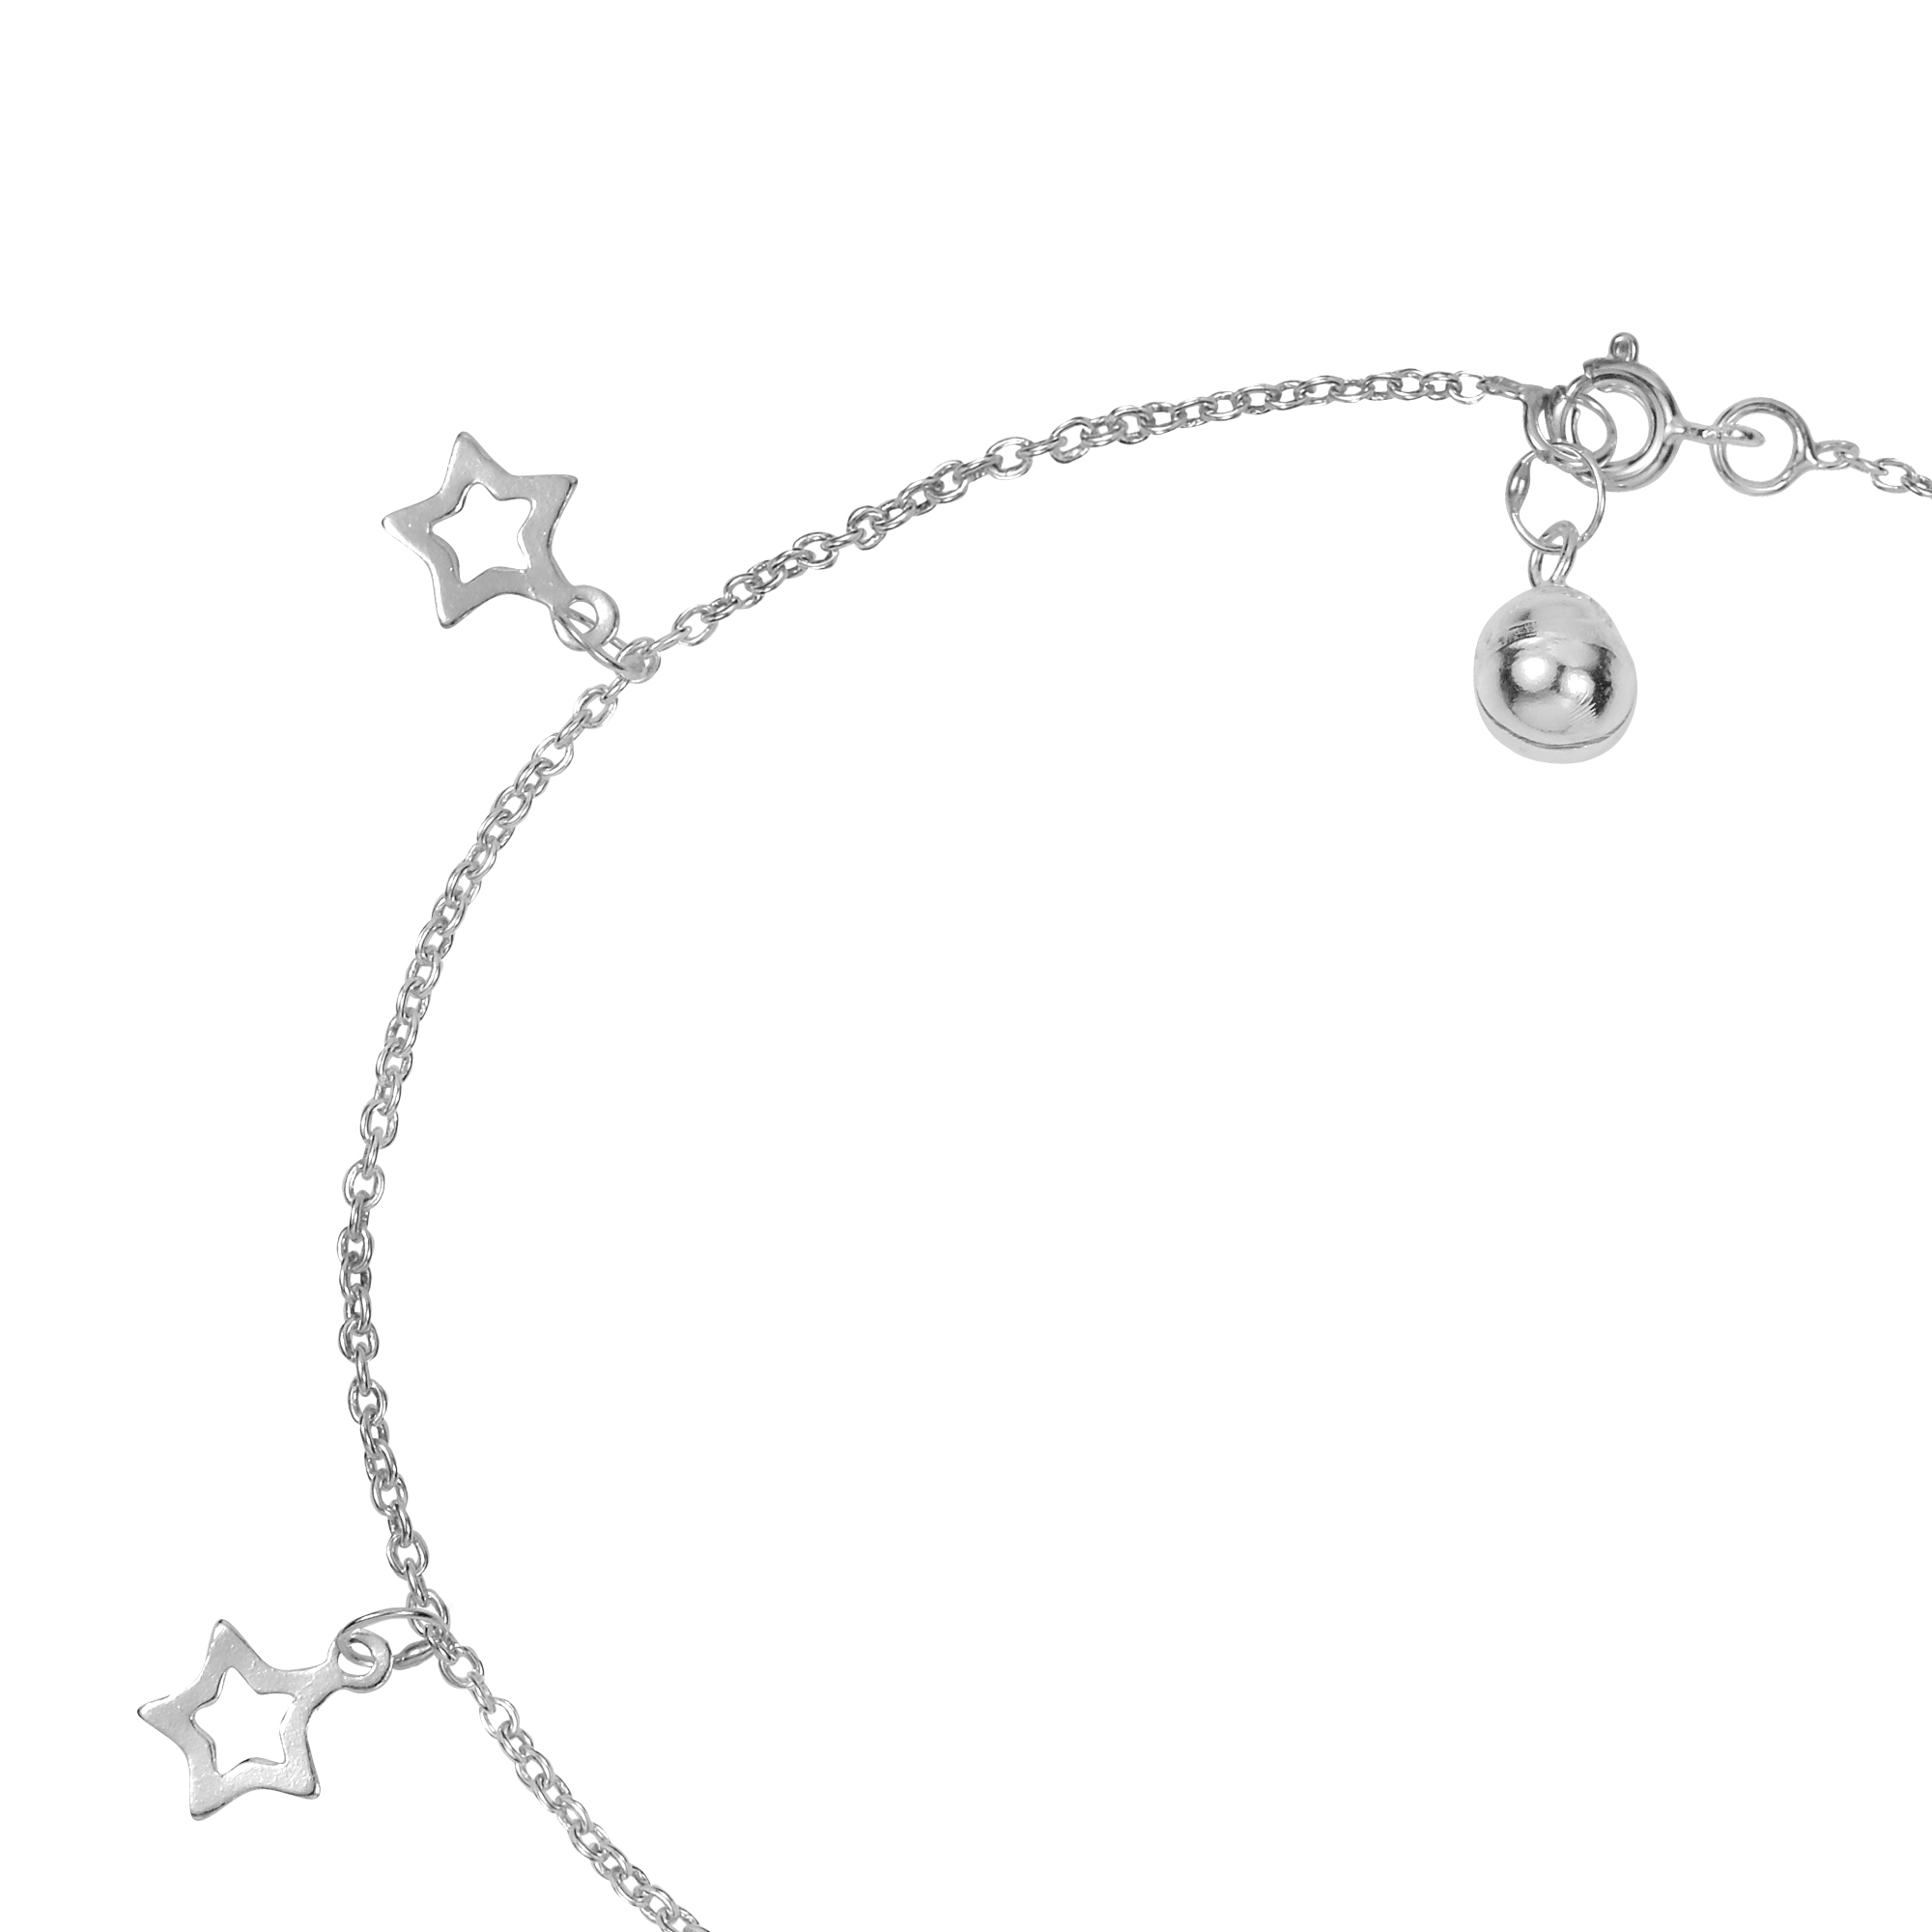 parade sterling close uk jewelry indian unicef silver market elephant link product heart anklet